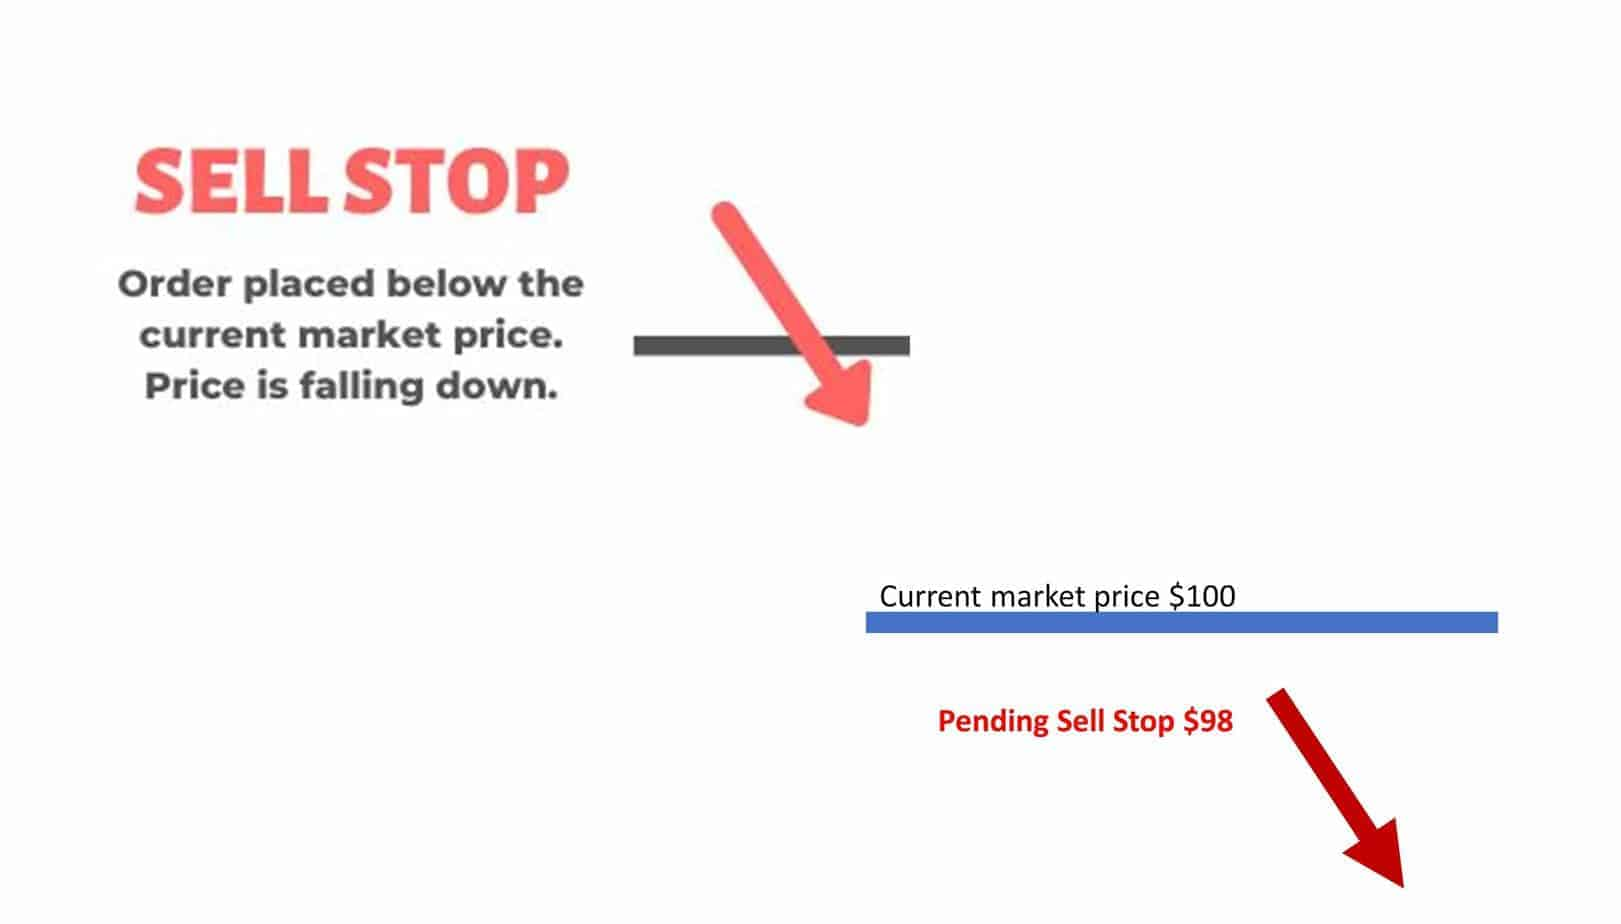 sell stop order